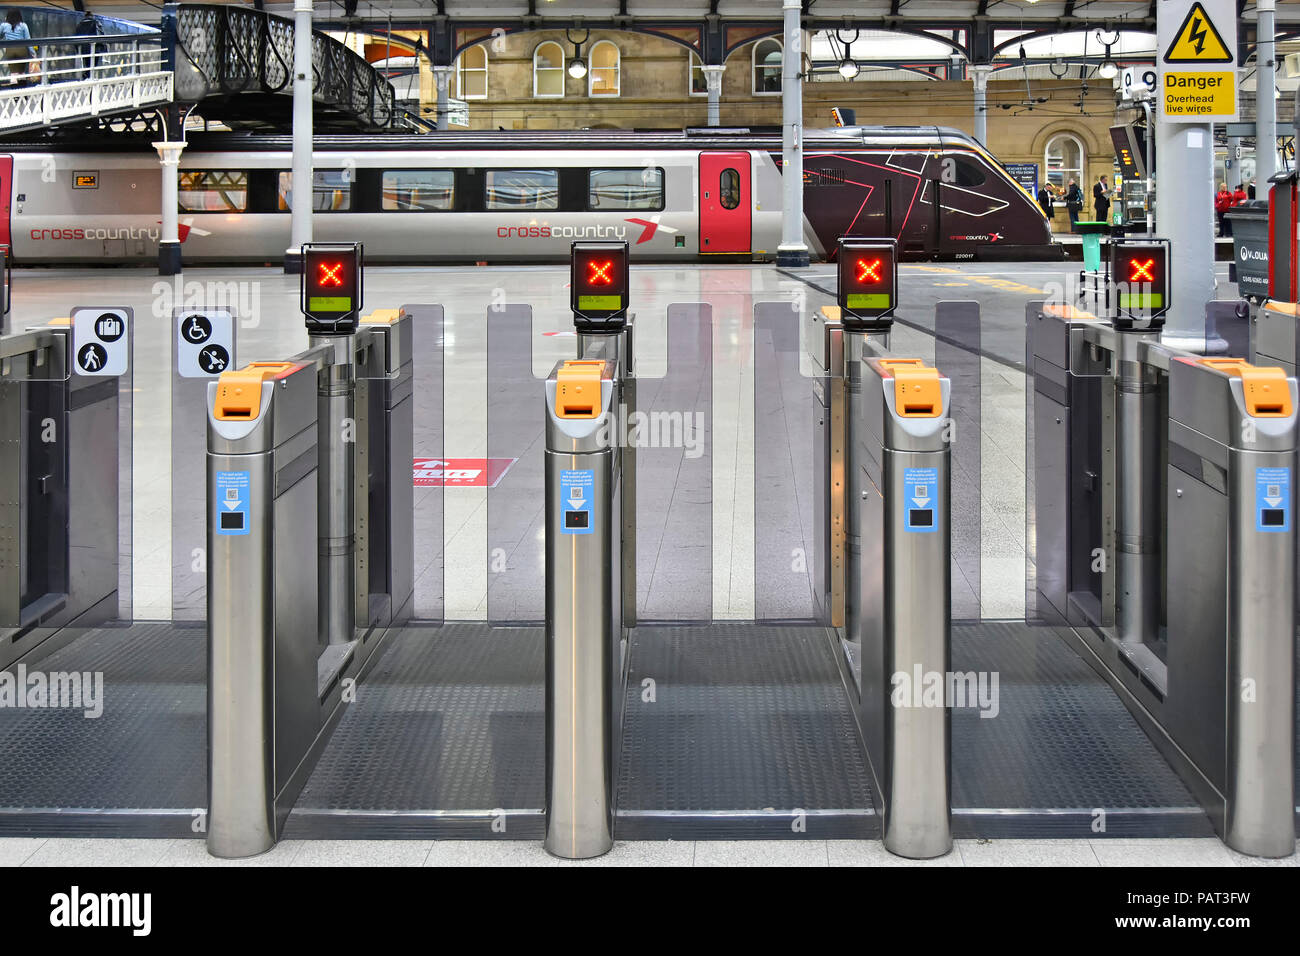 Rail ticket barrier no entry sign with Arriva Cross Country train at platform Newcastle upon Tyne public transport railway station Tyne and Wear UK - Stock Image